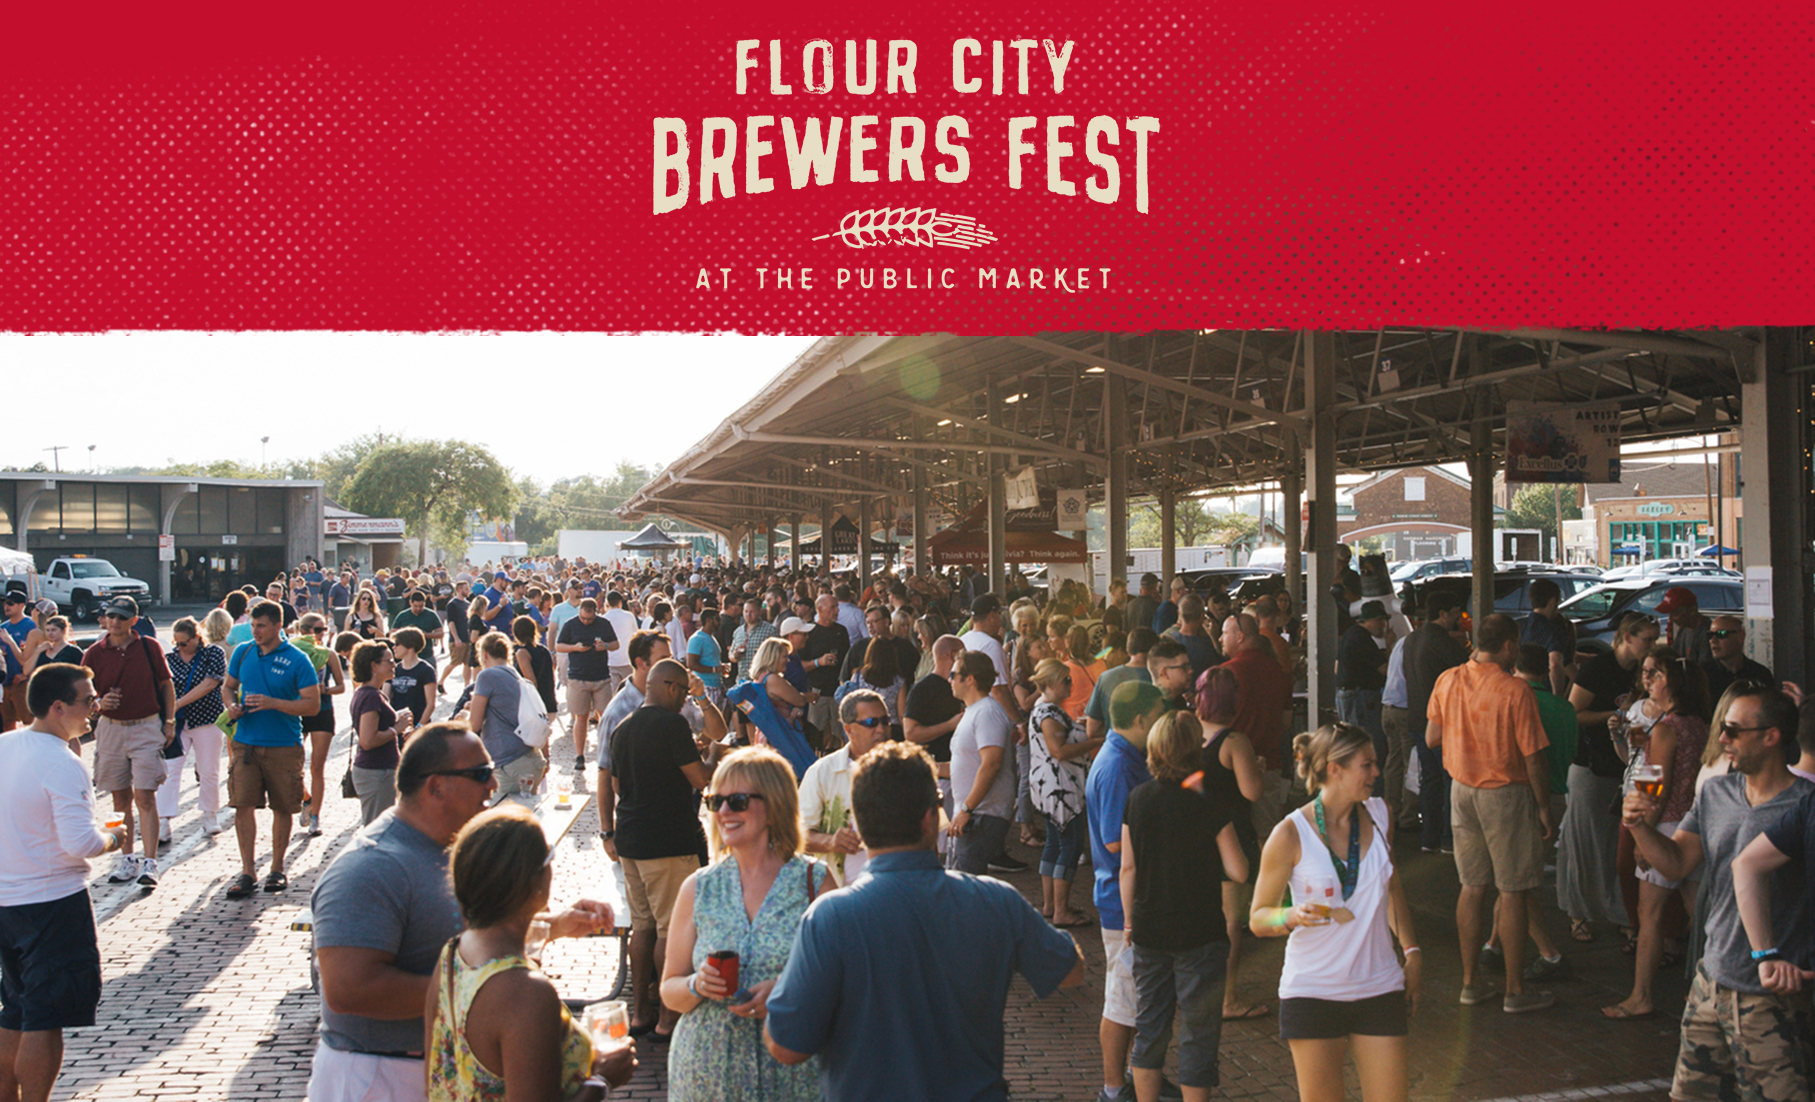 Flour City Brewers Fest 2019